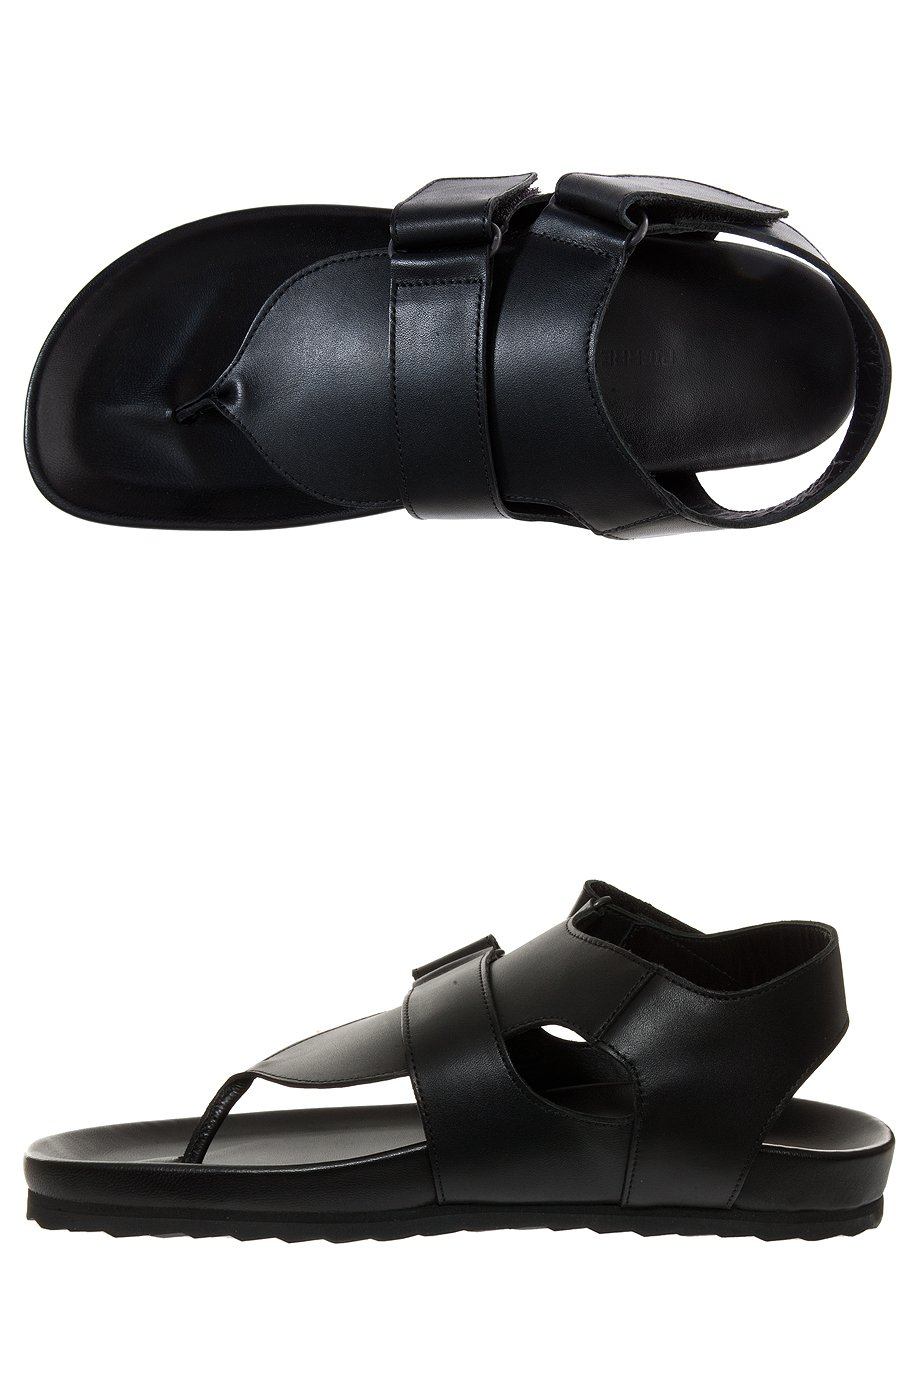 Lyst Pierre Hardy Leather Sandals In Black For Men